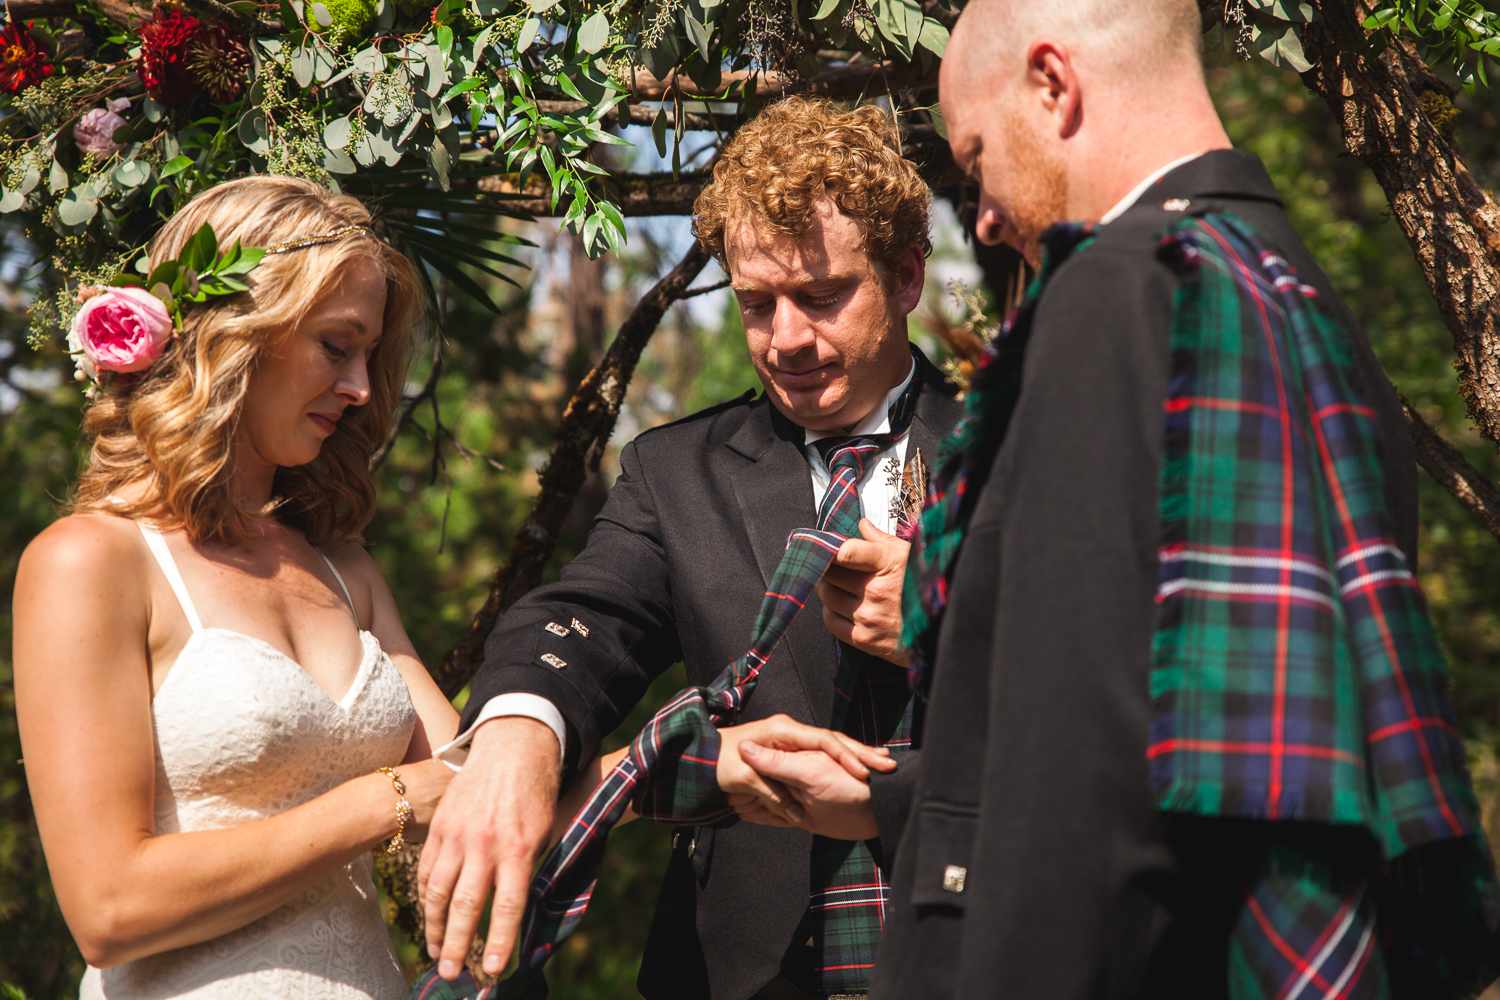 scottish handfasting wedding.jpg